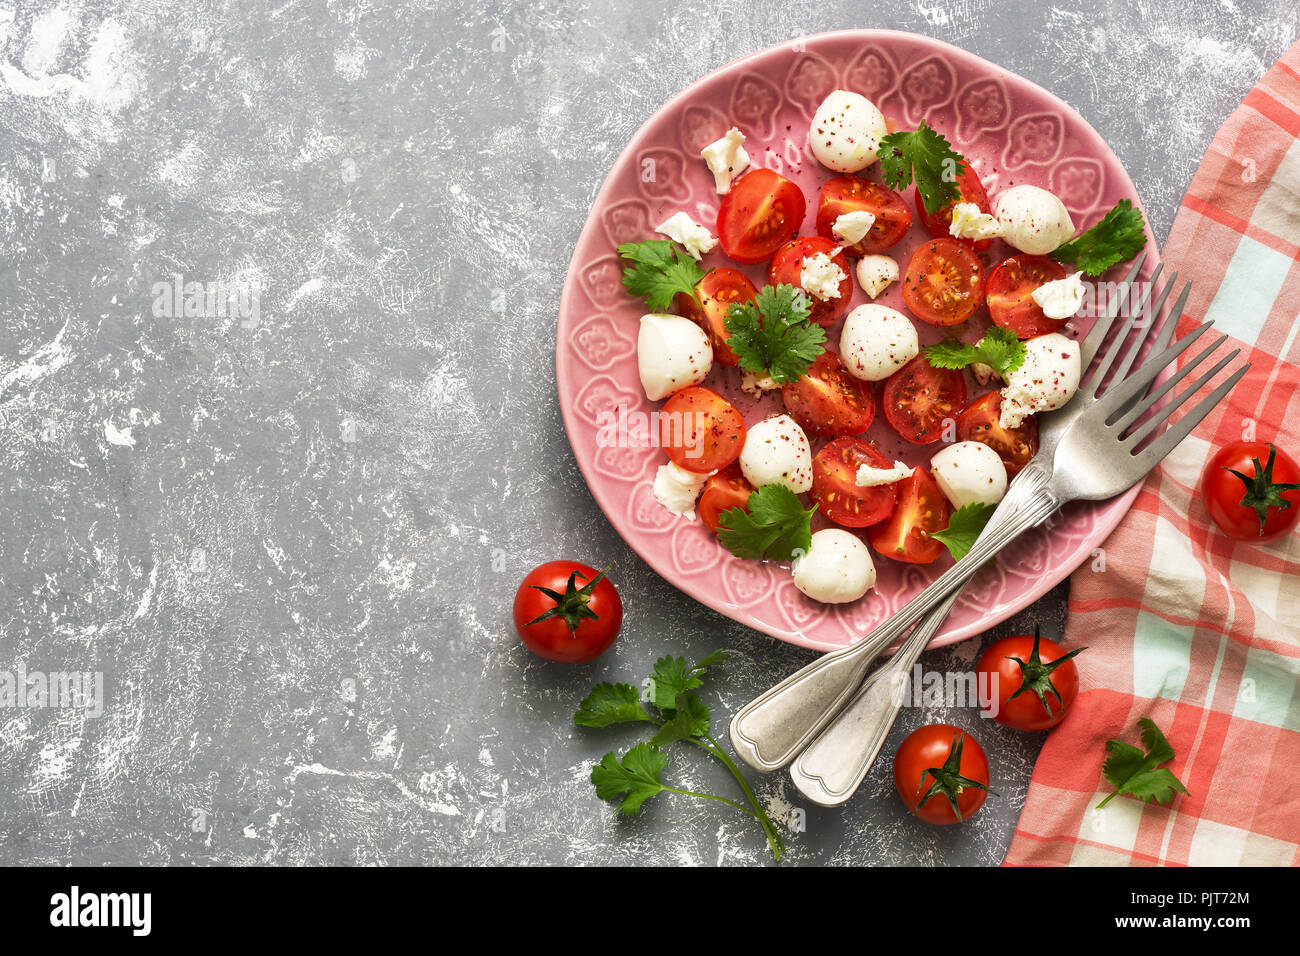 Fresh salad with mozzarella and tomatoes on a grey background, checkered napkin and forks. - Stock Image